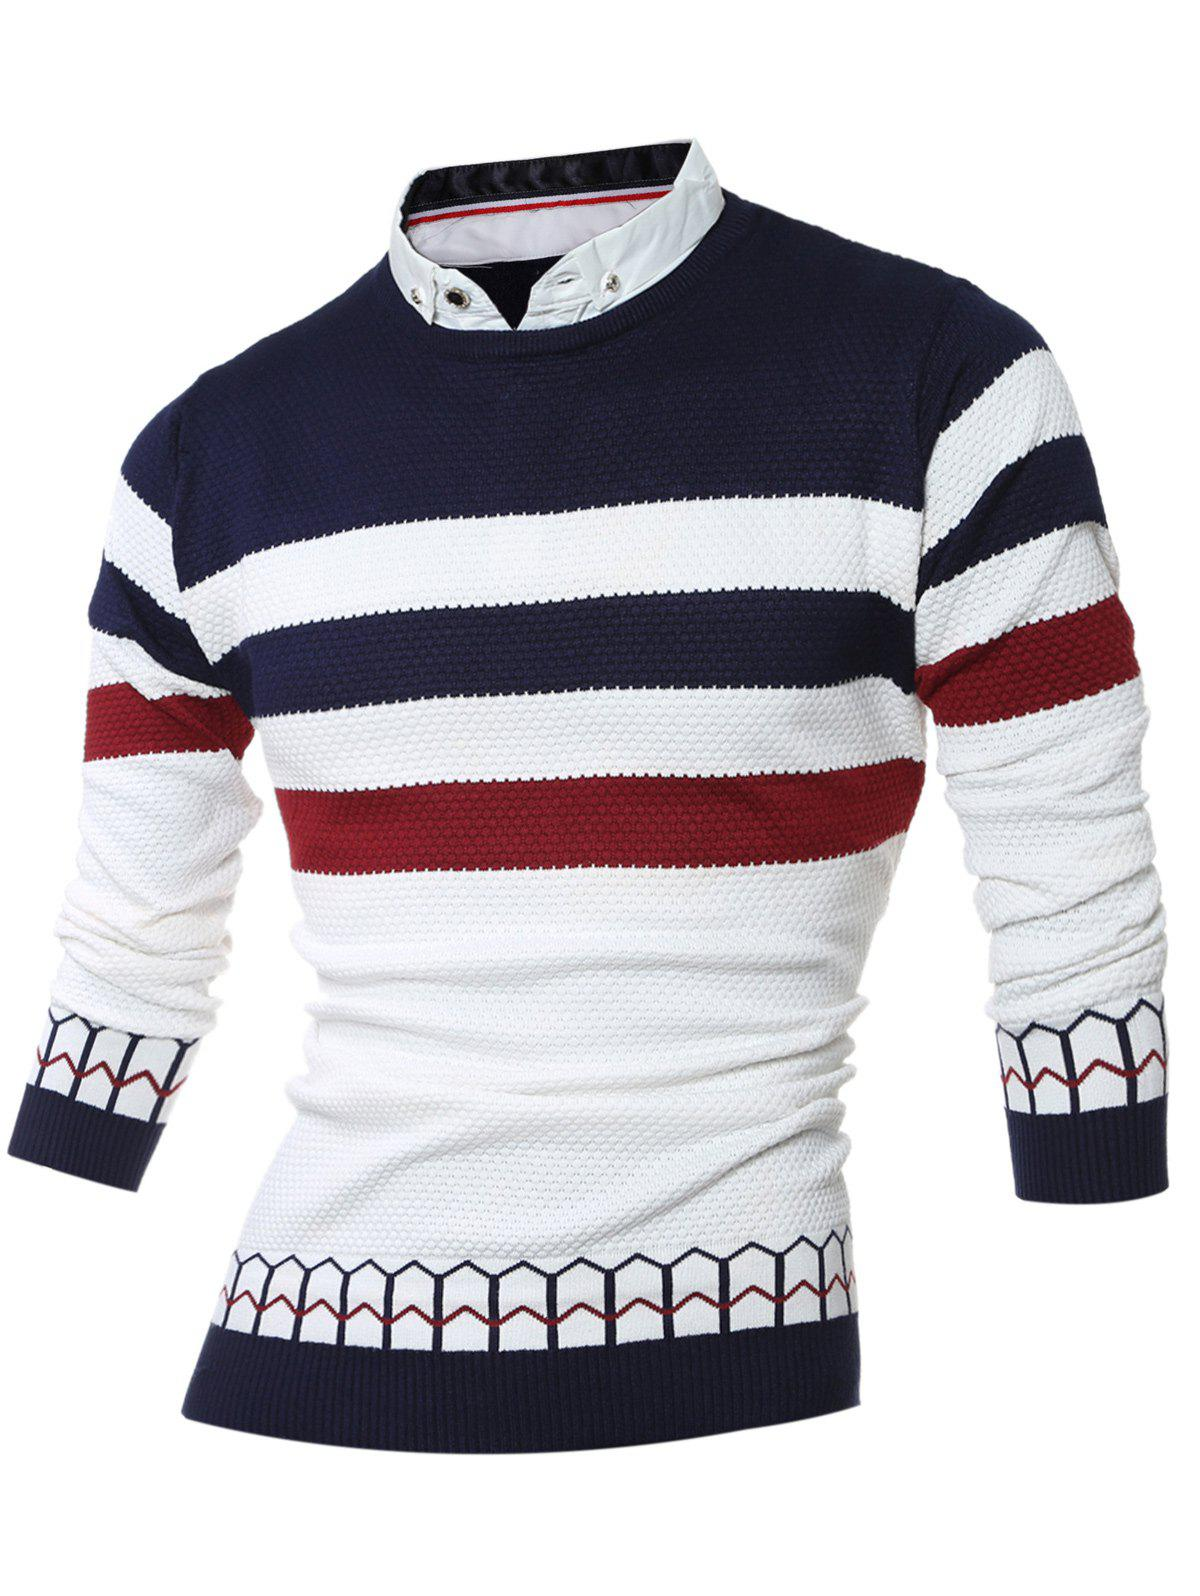 Faux Twinset Shirt Collar Color Block Stripe Spliced Knitting Sweater 201296004